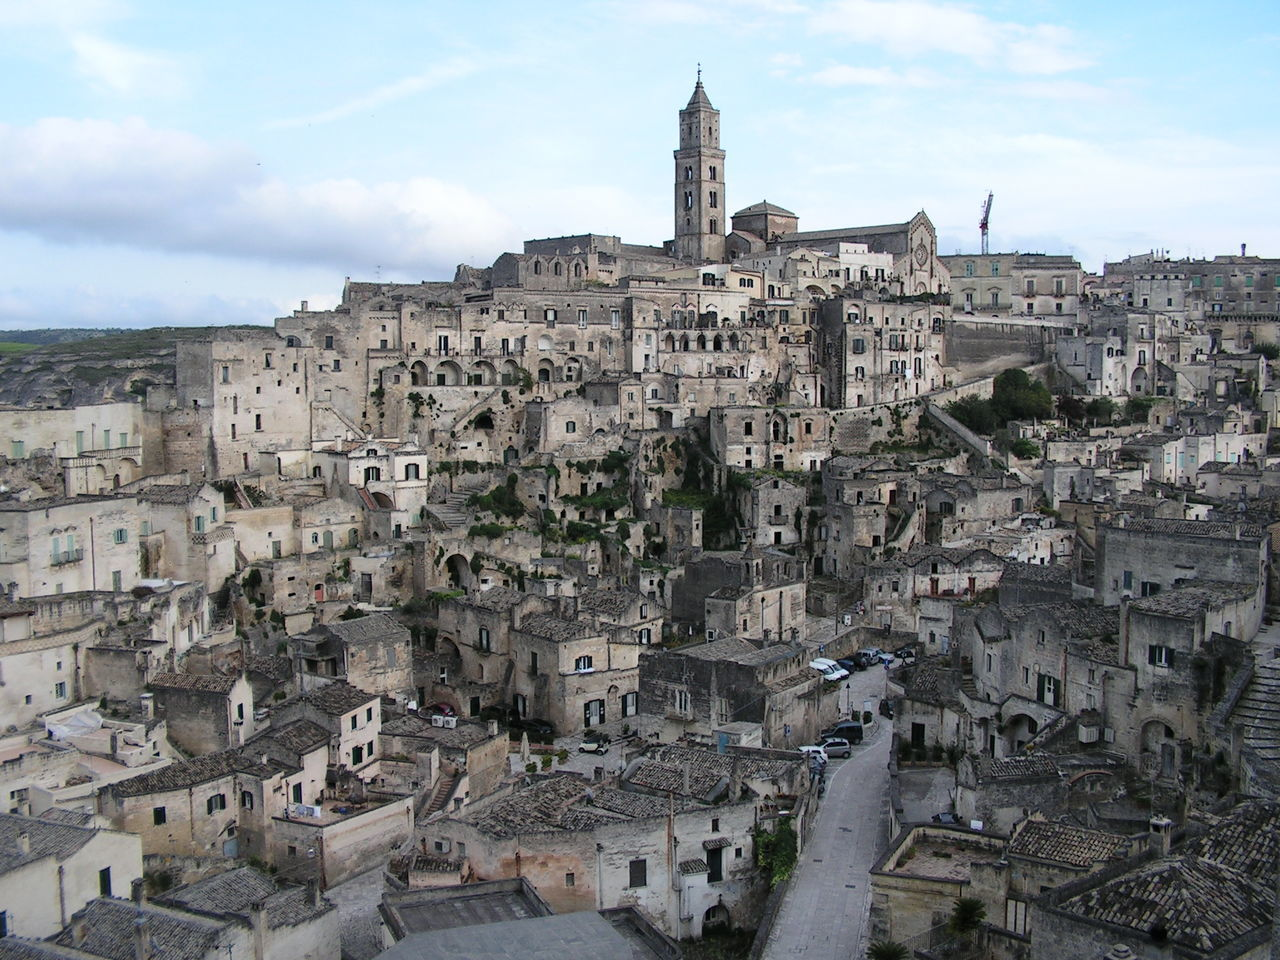 Architecture Built Structure City Cityscape Culture History Old Town Residential Building The Past Tourism Matera Matera View Matera Italy Materaunesco Matera, Italy Matera - Italia Matera